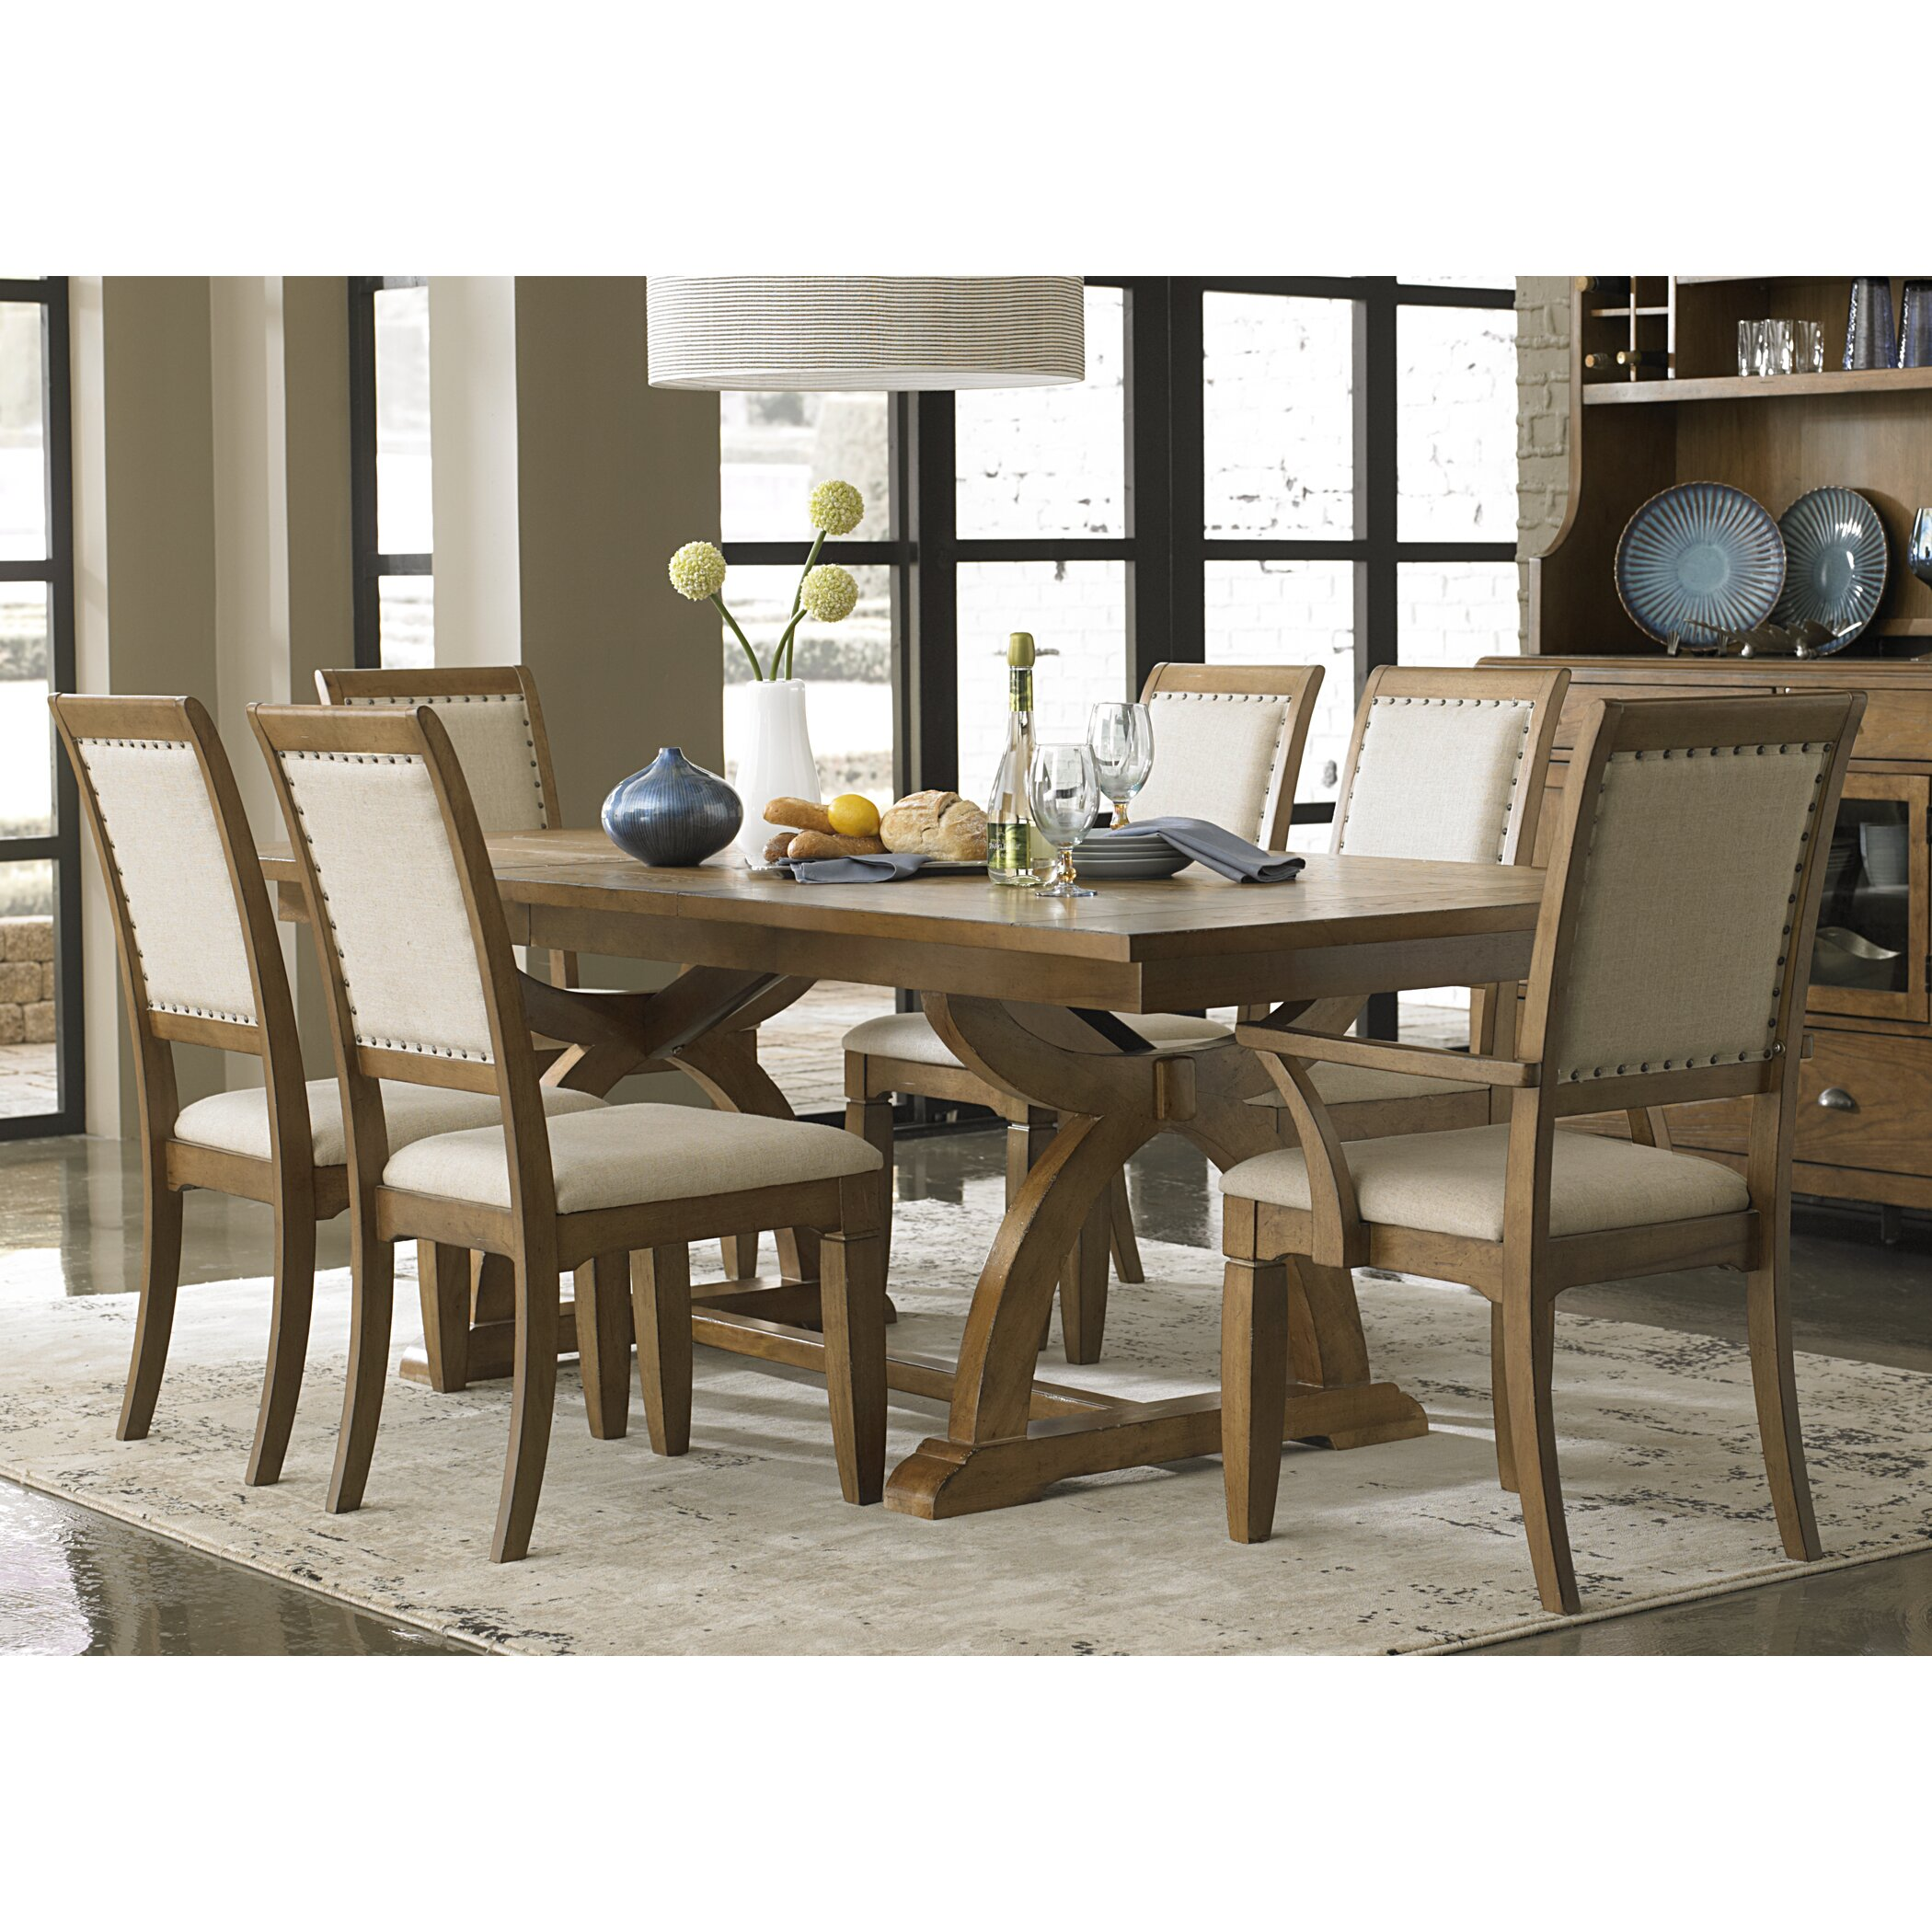 Liberty furniture town and country 7 piece dining set for Furniture 7 reviews